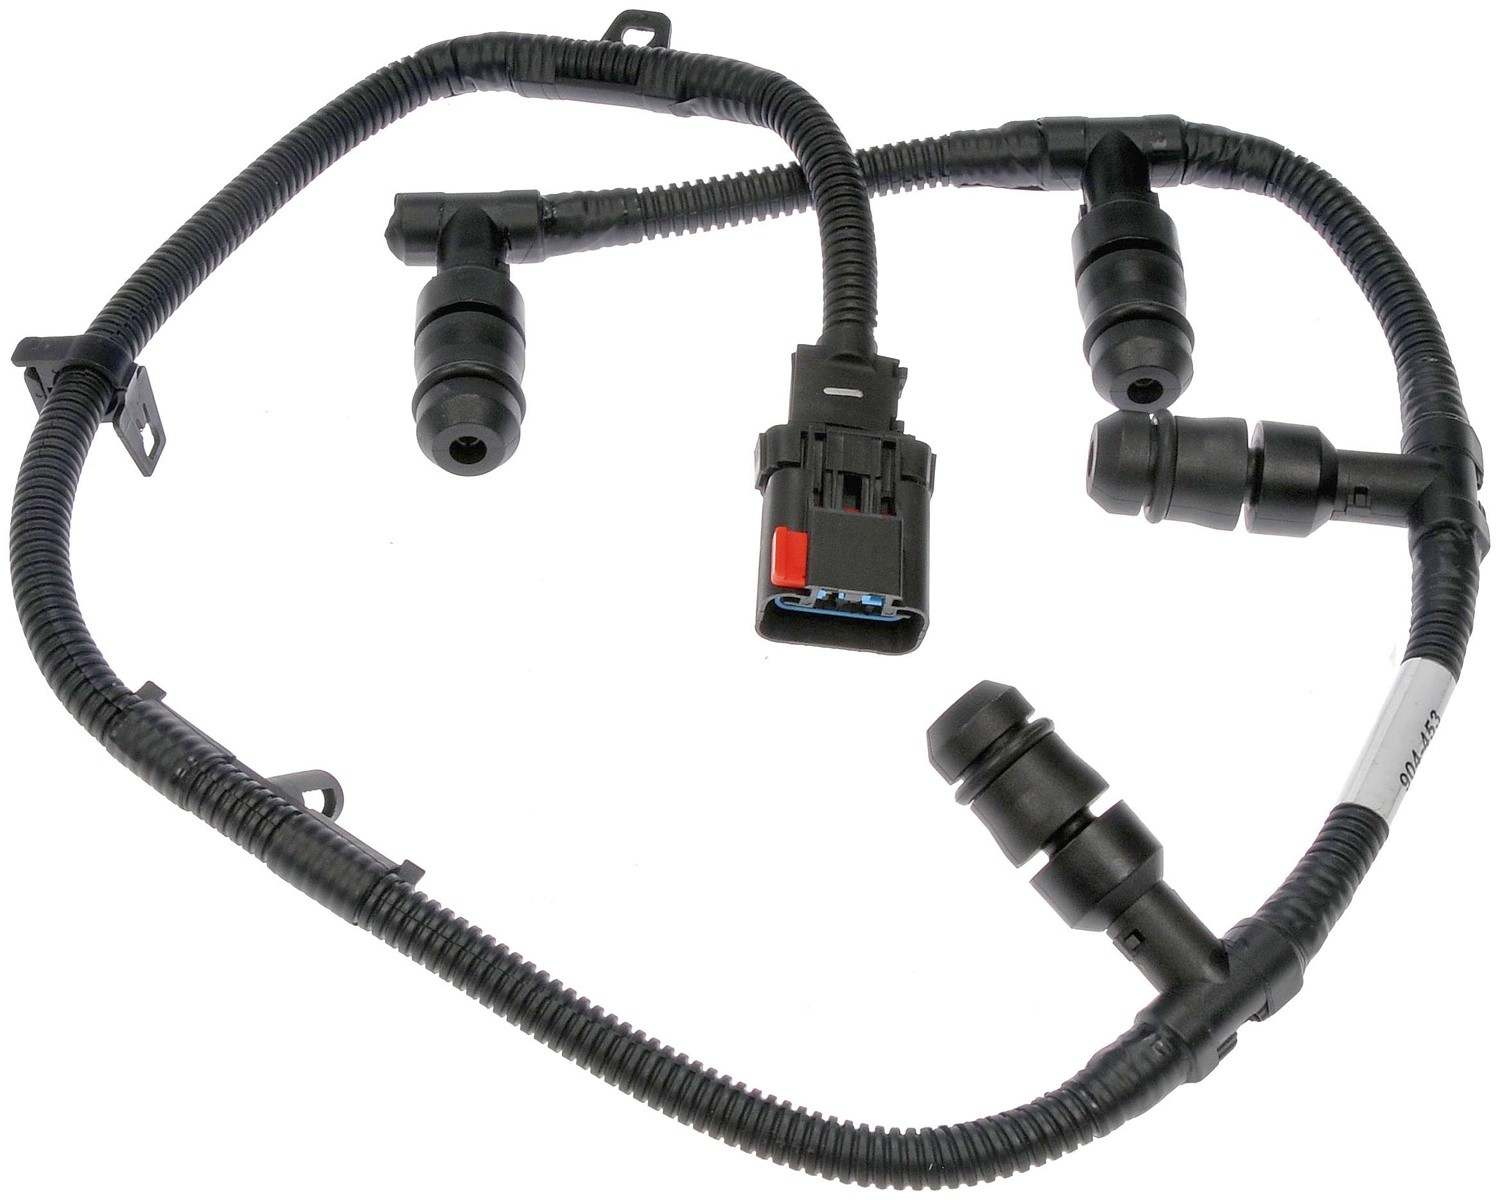 Dorman Oe Solutions Diesel Glow Plug Wiring Harness Part Number Right Dre 904